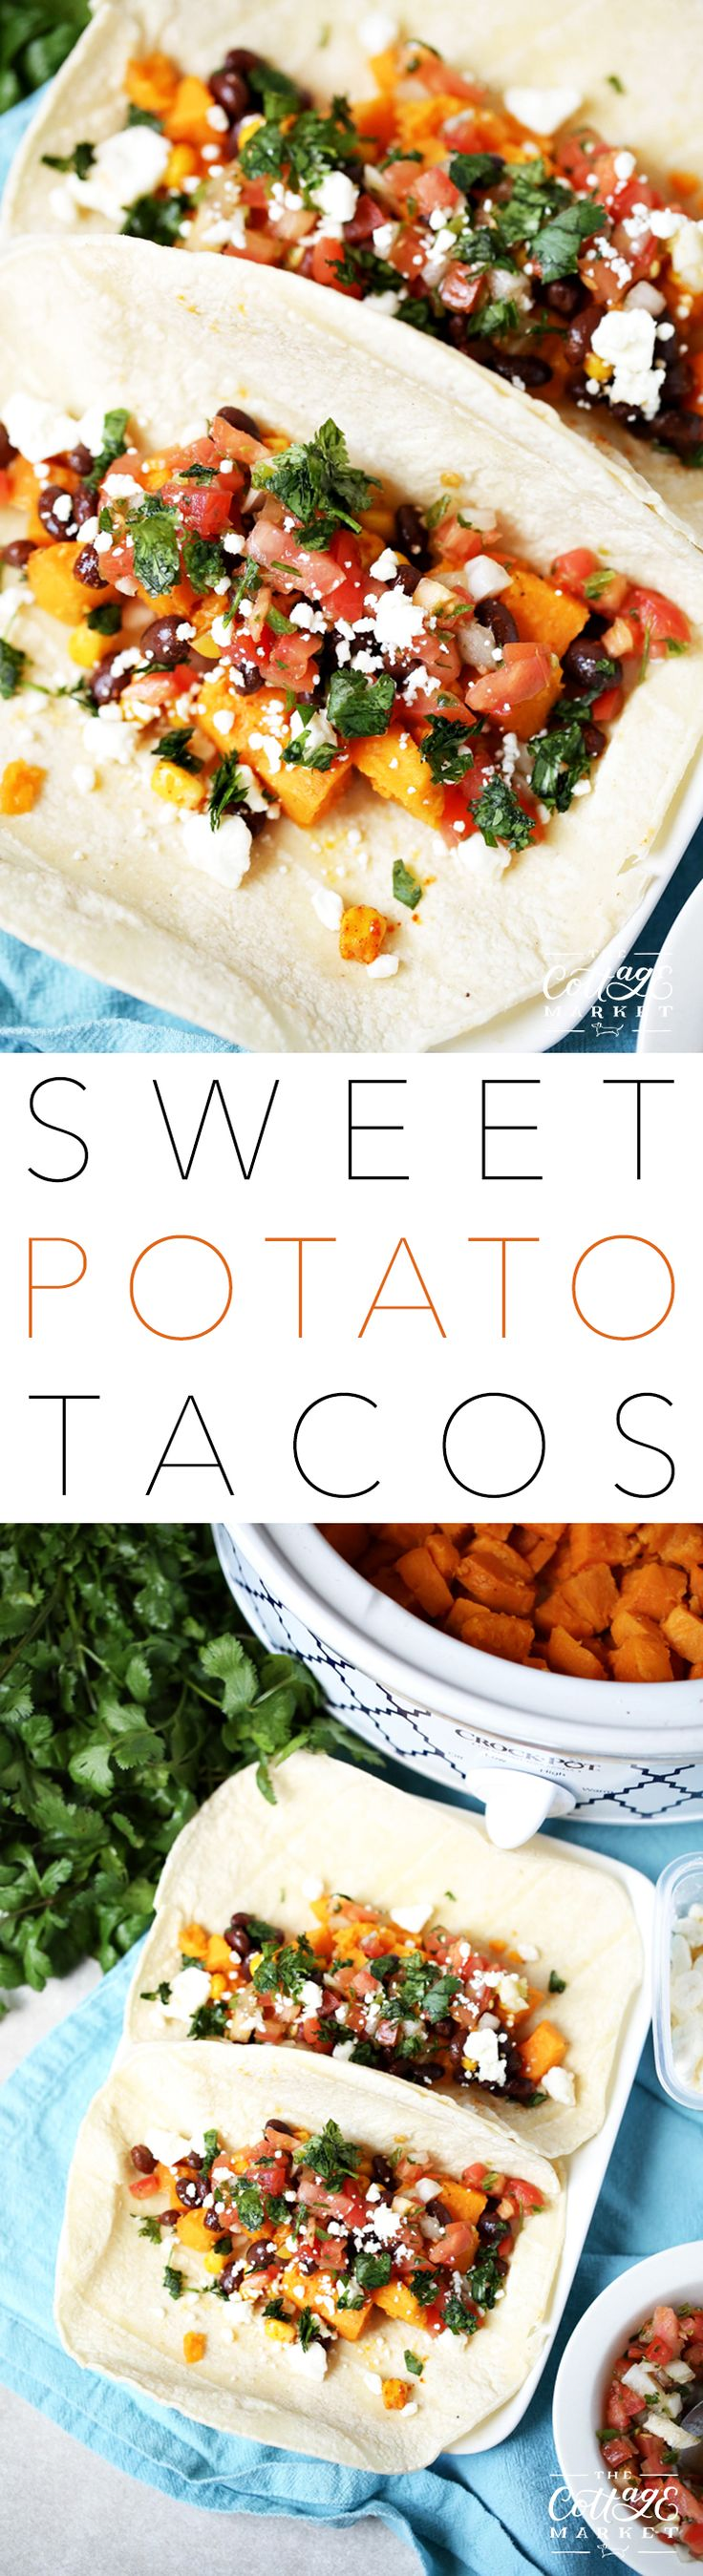 Don't know what to make for Dinner? Want something quick…easy and tasty? Oh and would you like your meal to be healthy and fresh? Well then I do believe that this Slow Cooker Sweet Potato Tacos are for you and your family. Just pop those Sweet Potatoes in the Slow Cooker and they will be …